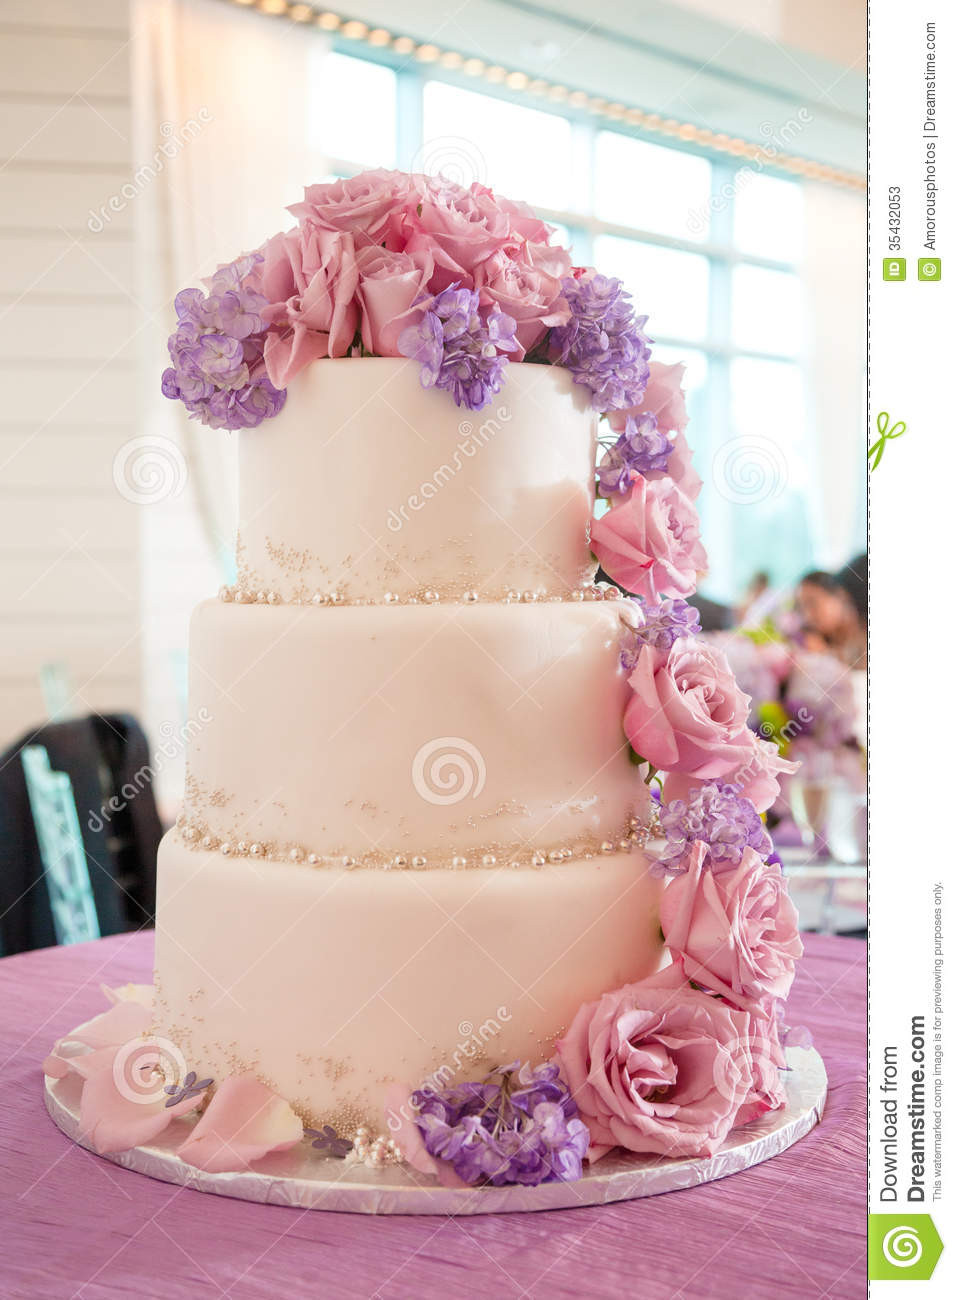 Pink And Purple Wedding Cakes  Wedding Cake With Pink And Purple Flowers Stock Image